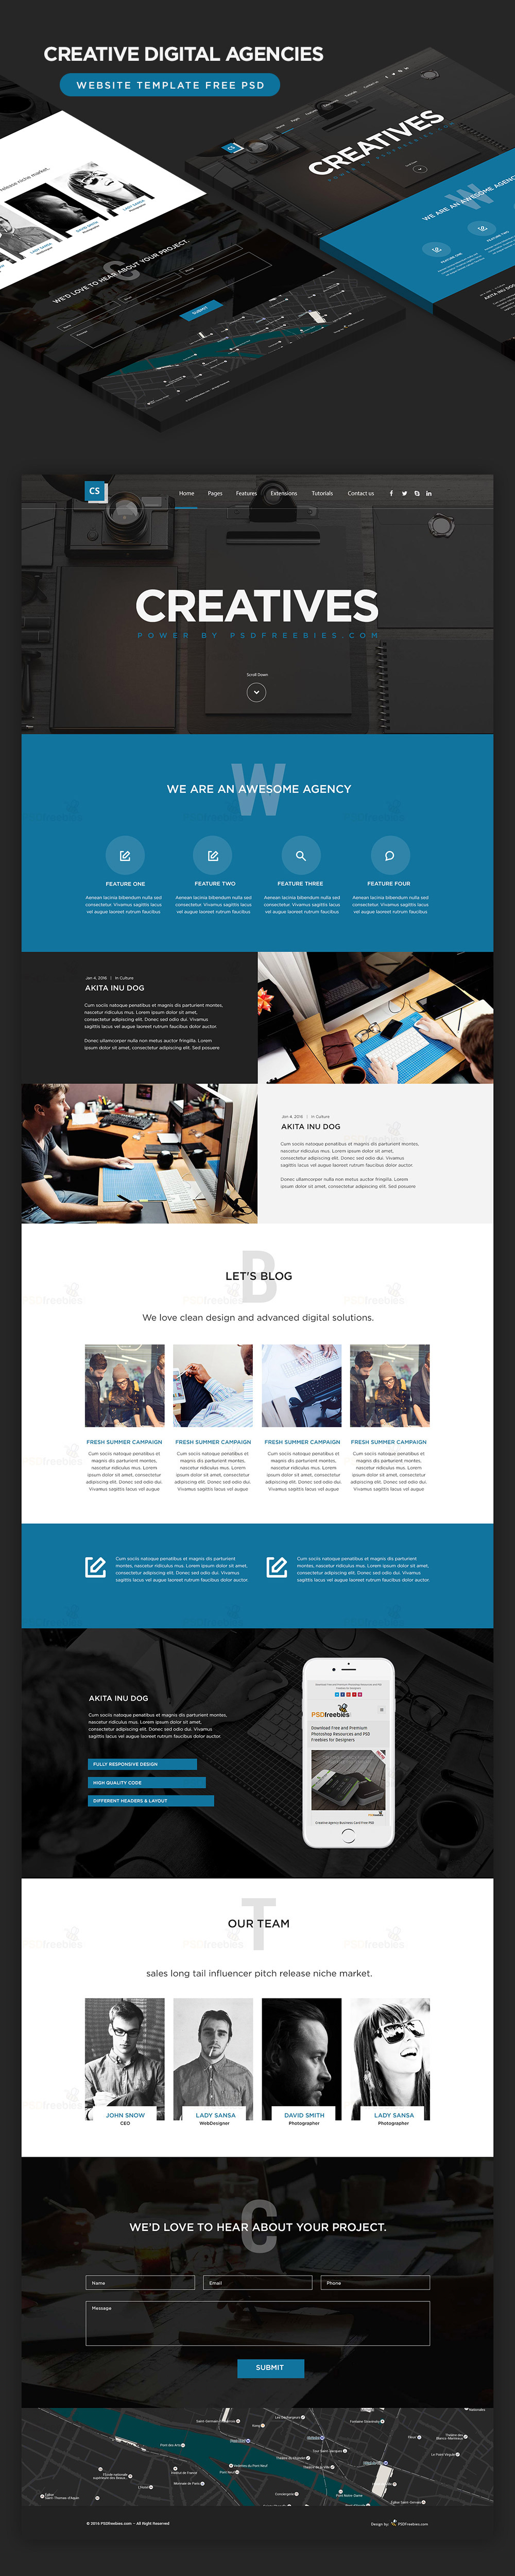 High Quality Free Corporate And Business Web Templates PSD - Free web site template